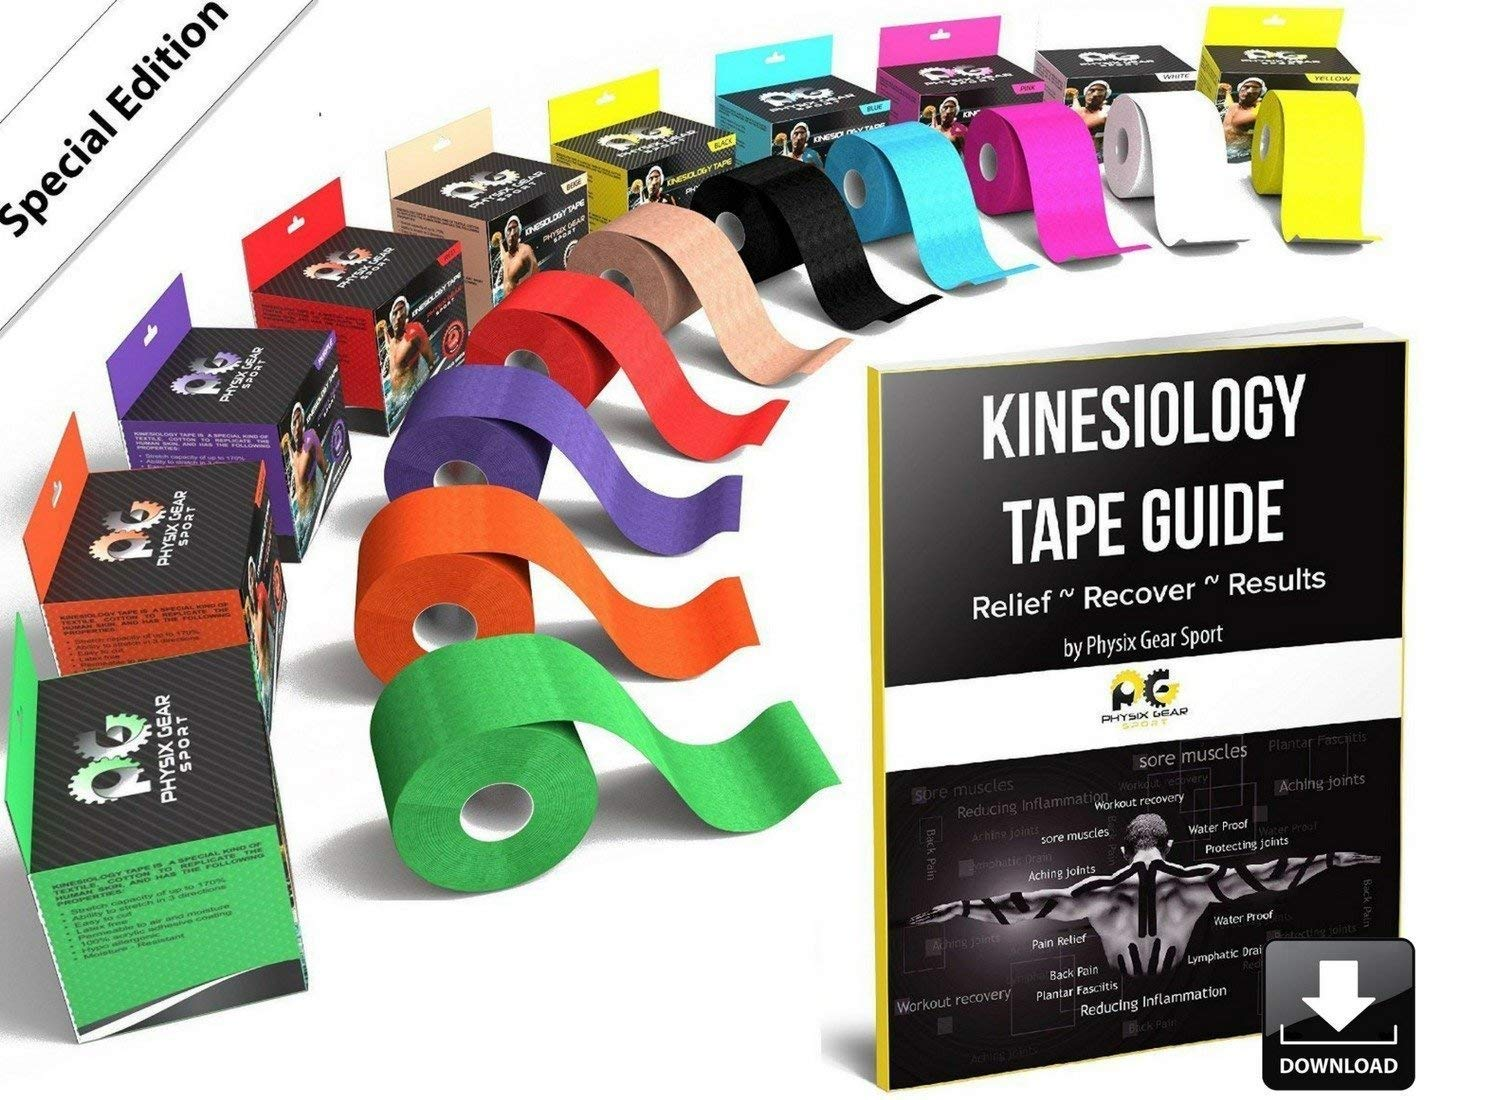 Physix Gear Sport Kinesiology Tape - Free Illustrated E-Guide - 16ft Uncut Roll - Best Pain Relief Adhesive for Muscles, Shin Splints Knee & Shoulder - 24/7 Waterproof Therapeutic Aid (1PK WHT)